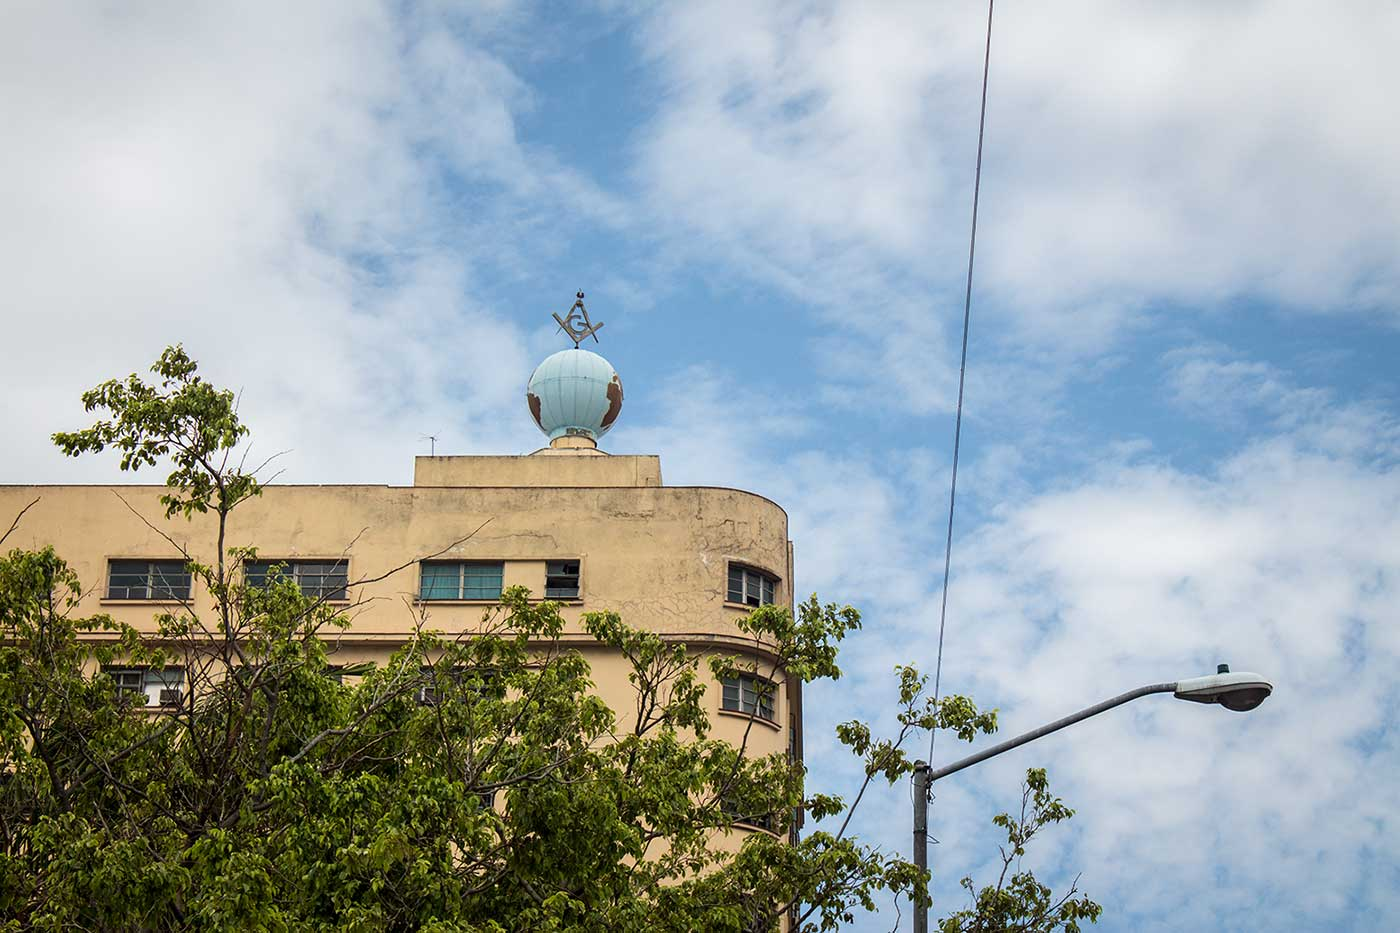 A square & compass adorn the globe on top of Cuba's Masonic headquarters.